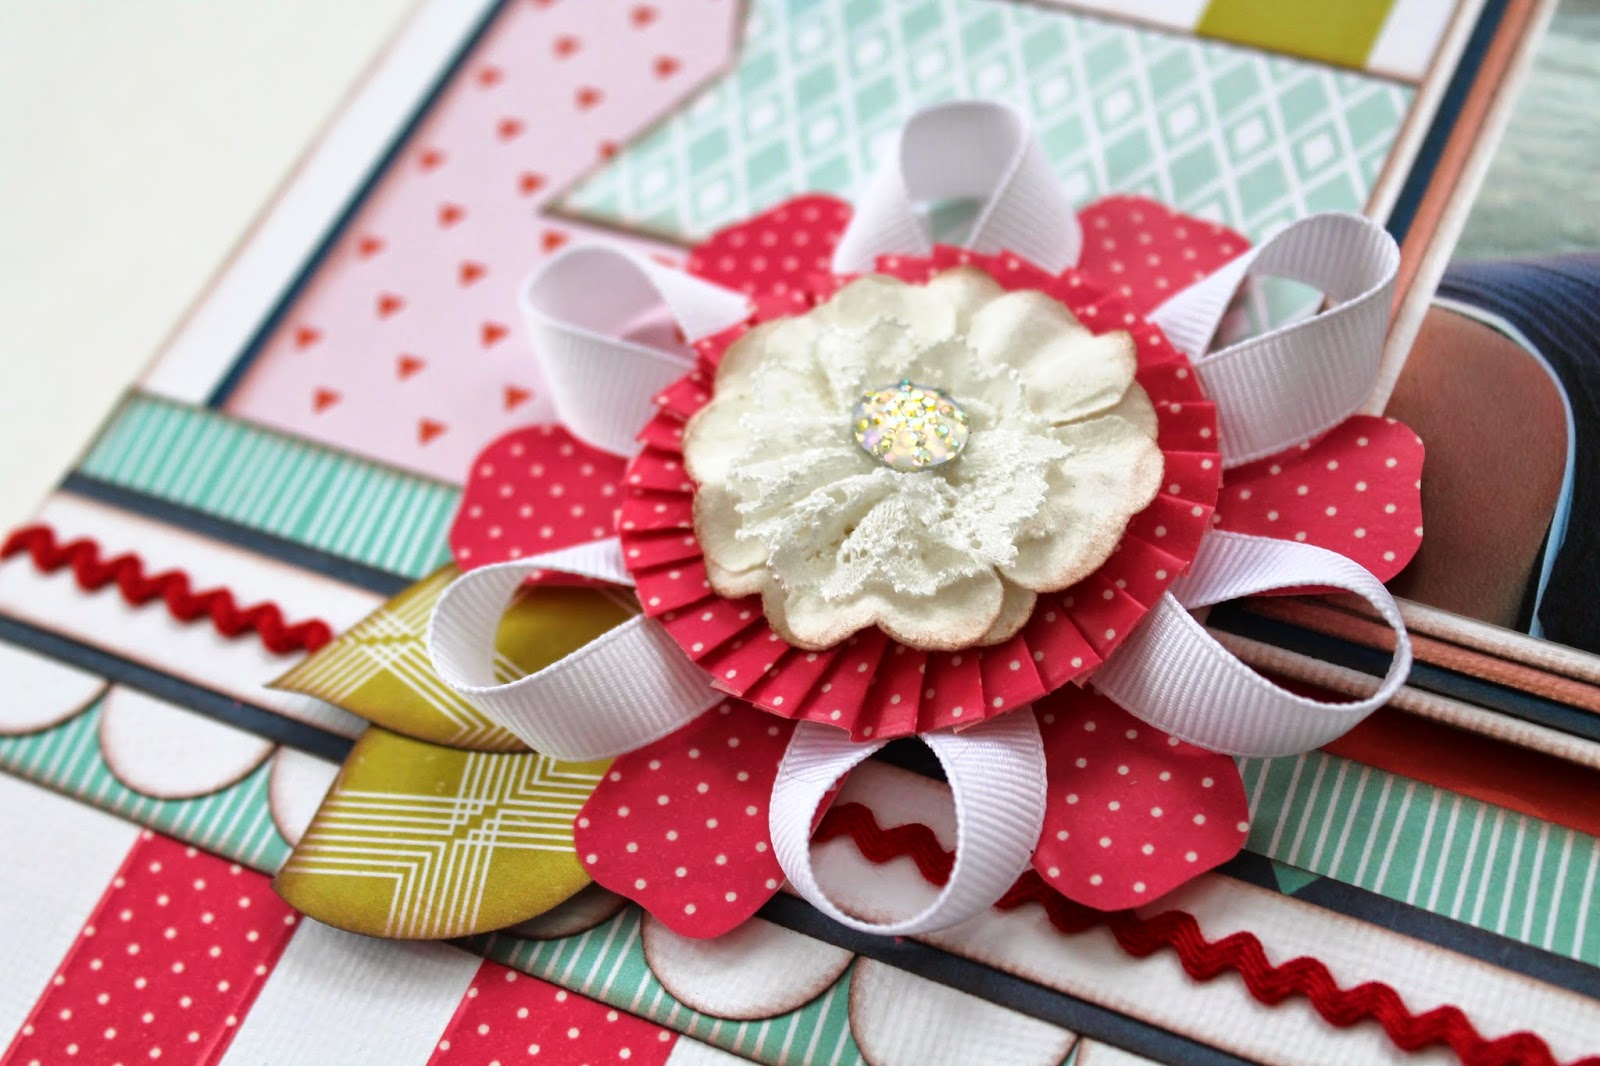 How to make scrapbook creative - This Layout Featured Some Very Pretty Washi Tape From Bella Blvd Stay Tuned For A Tutorial On How To Make This Oh So Pretty Flower Up On The My Creative